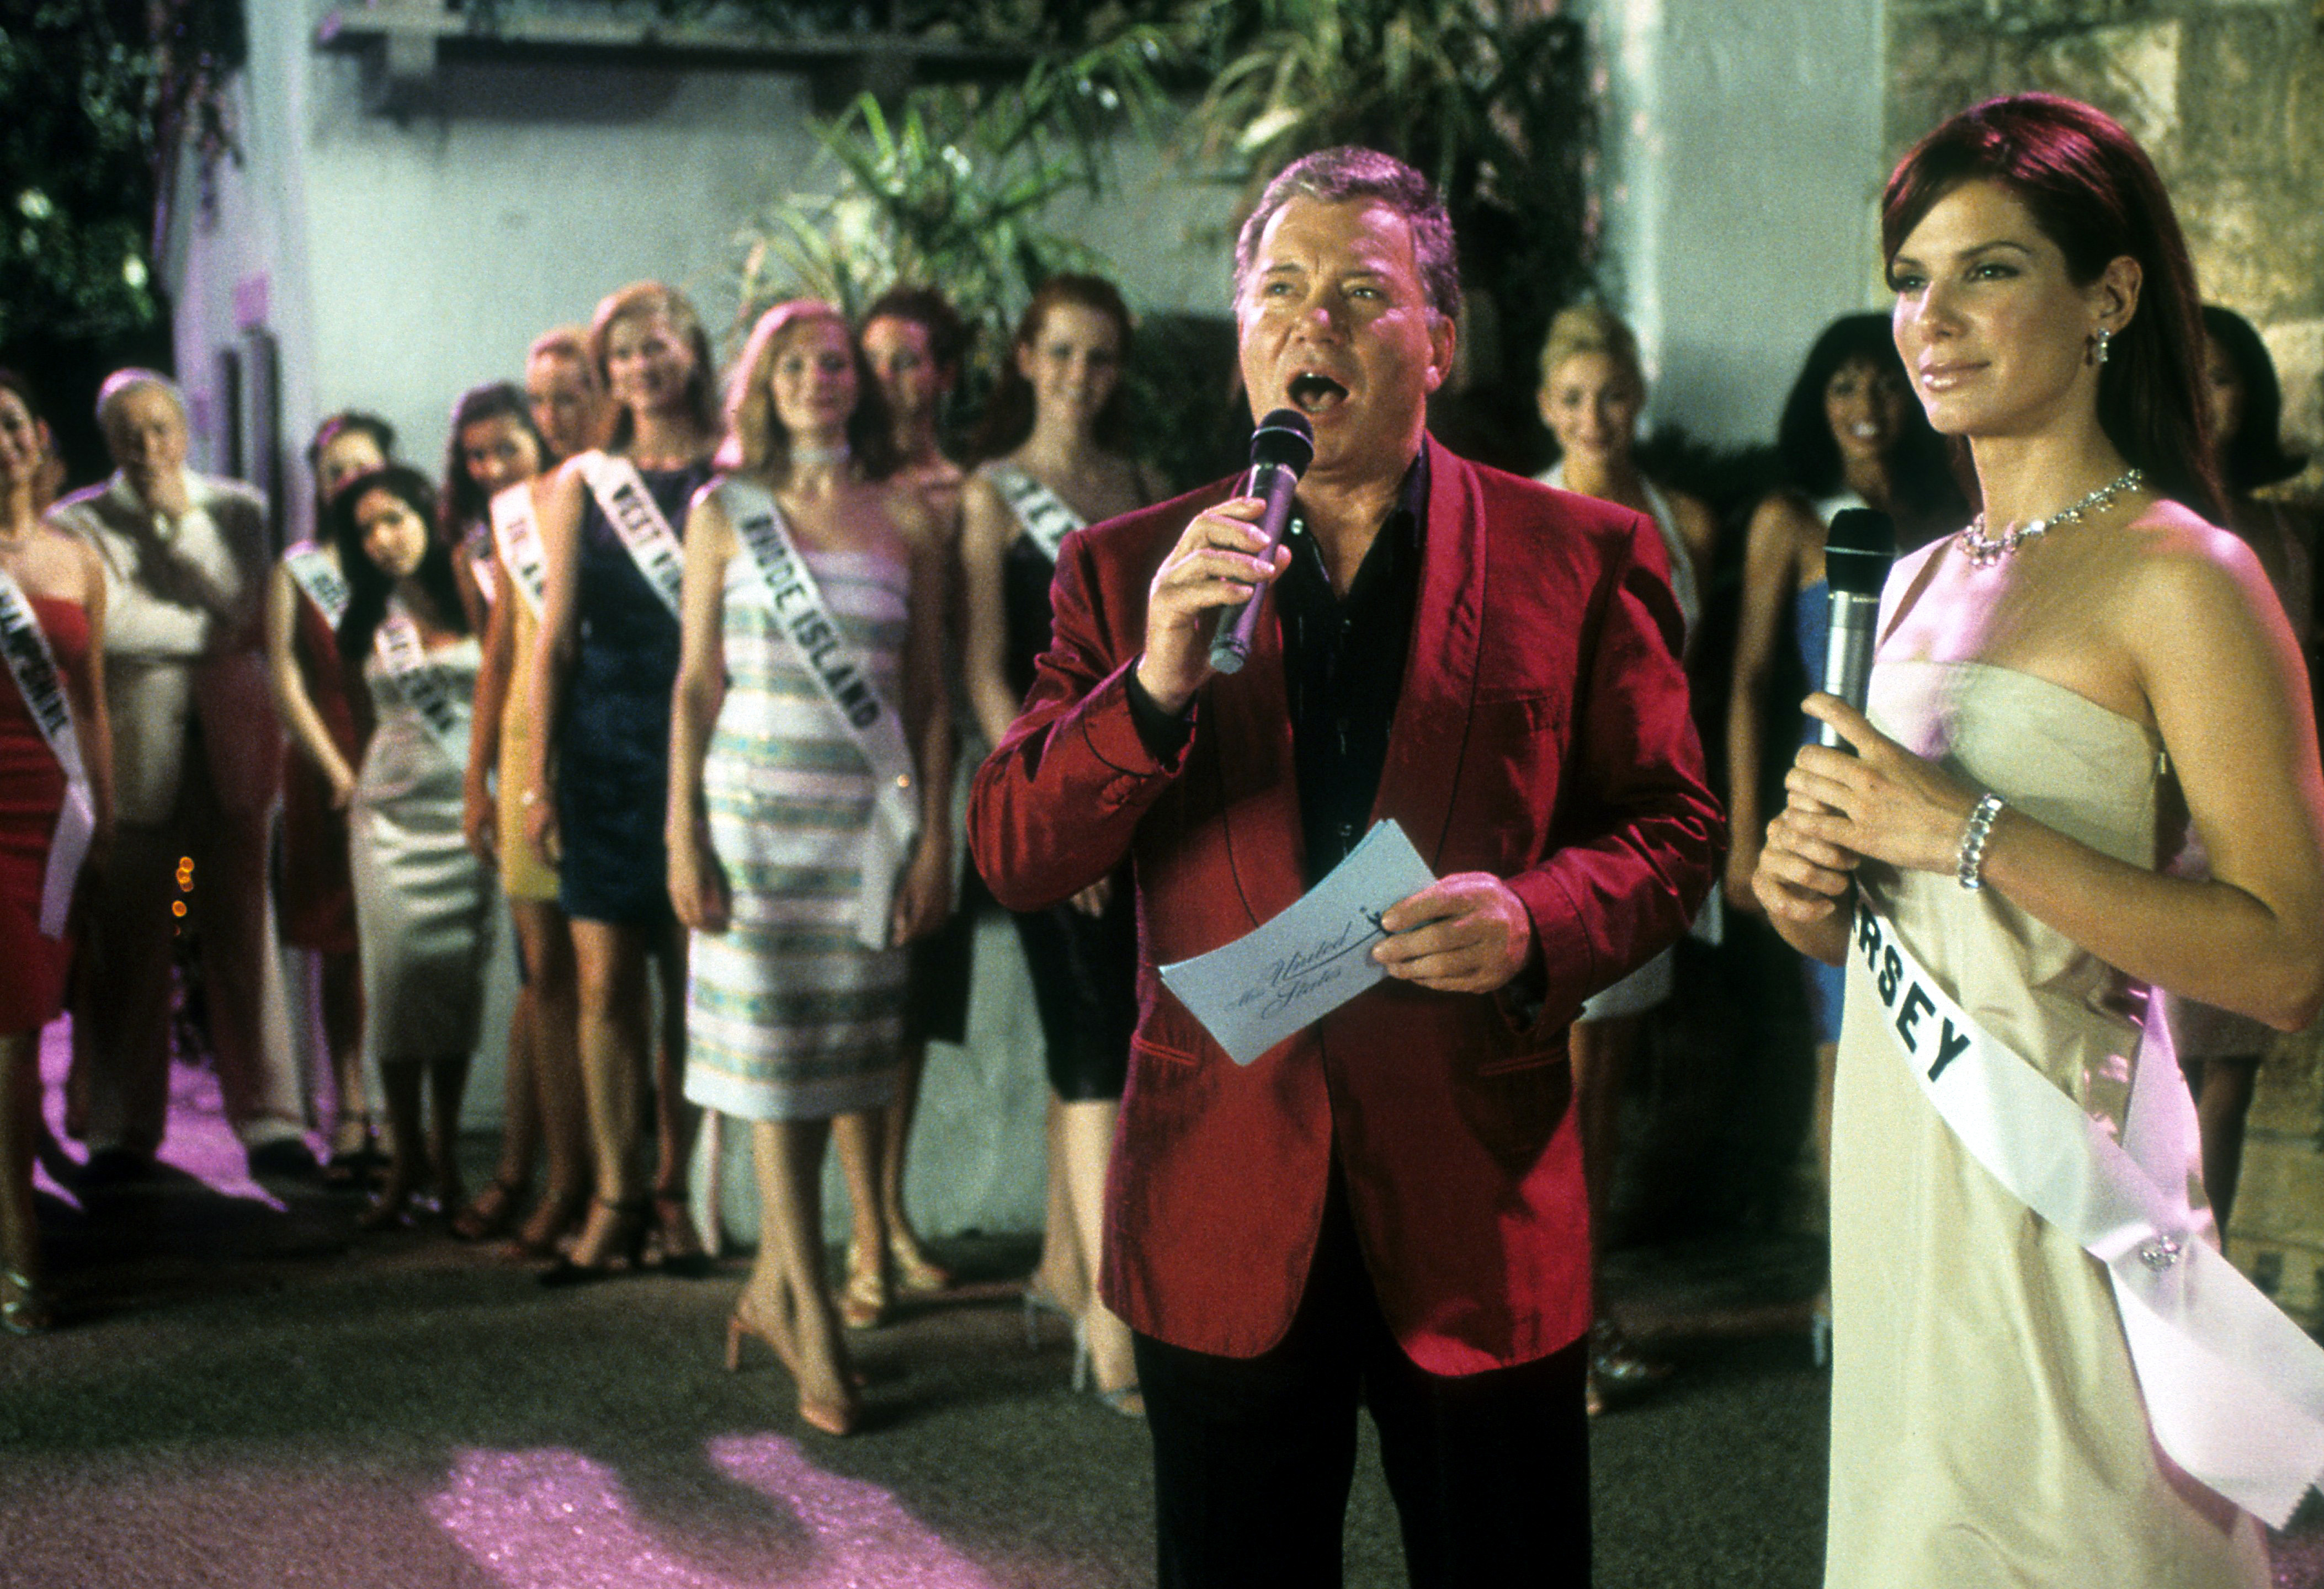 William Shatner speaks into a microphone next to Sandra Bullock in a scene from the film 'Miss Congeniality', 2000. (Photo by Warner Brothers/Getty Images)